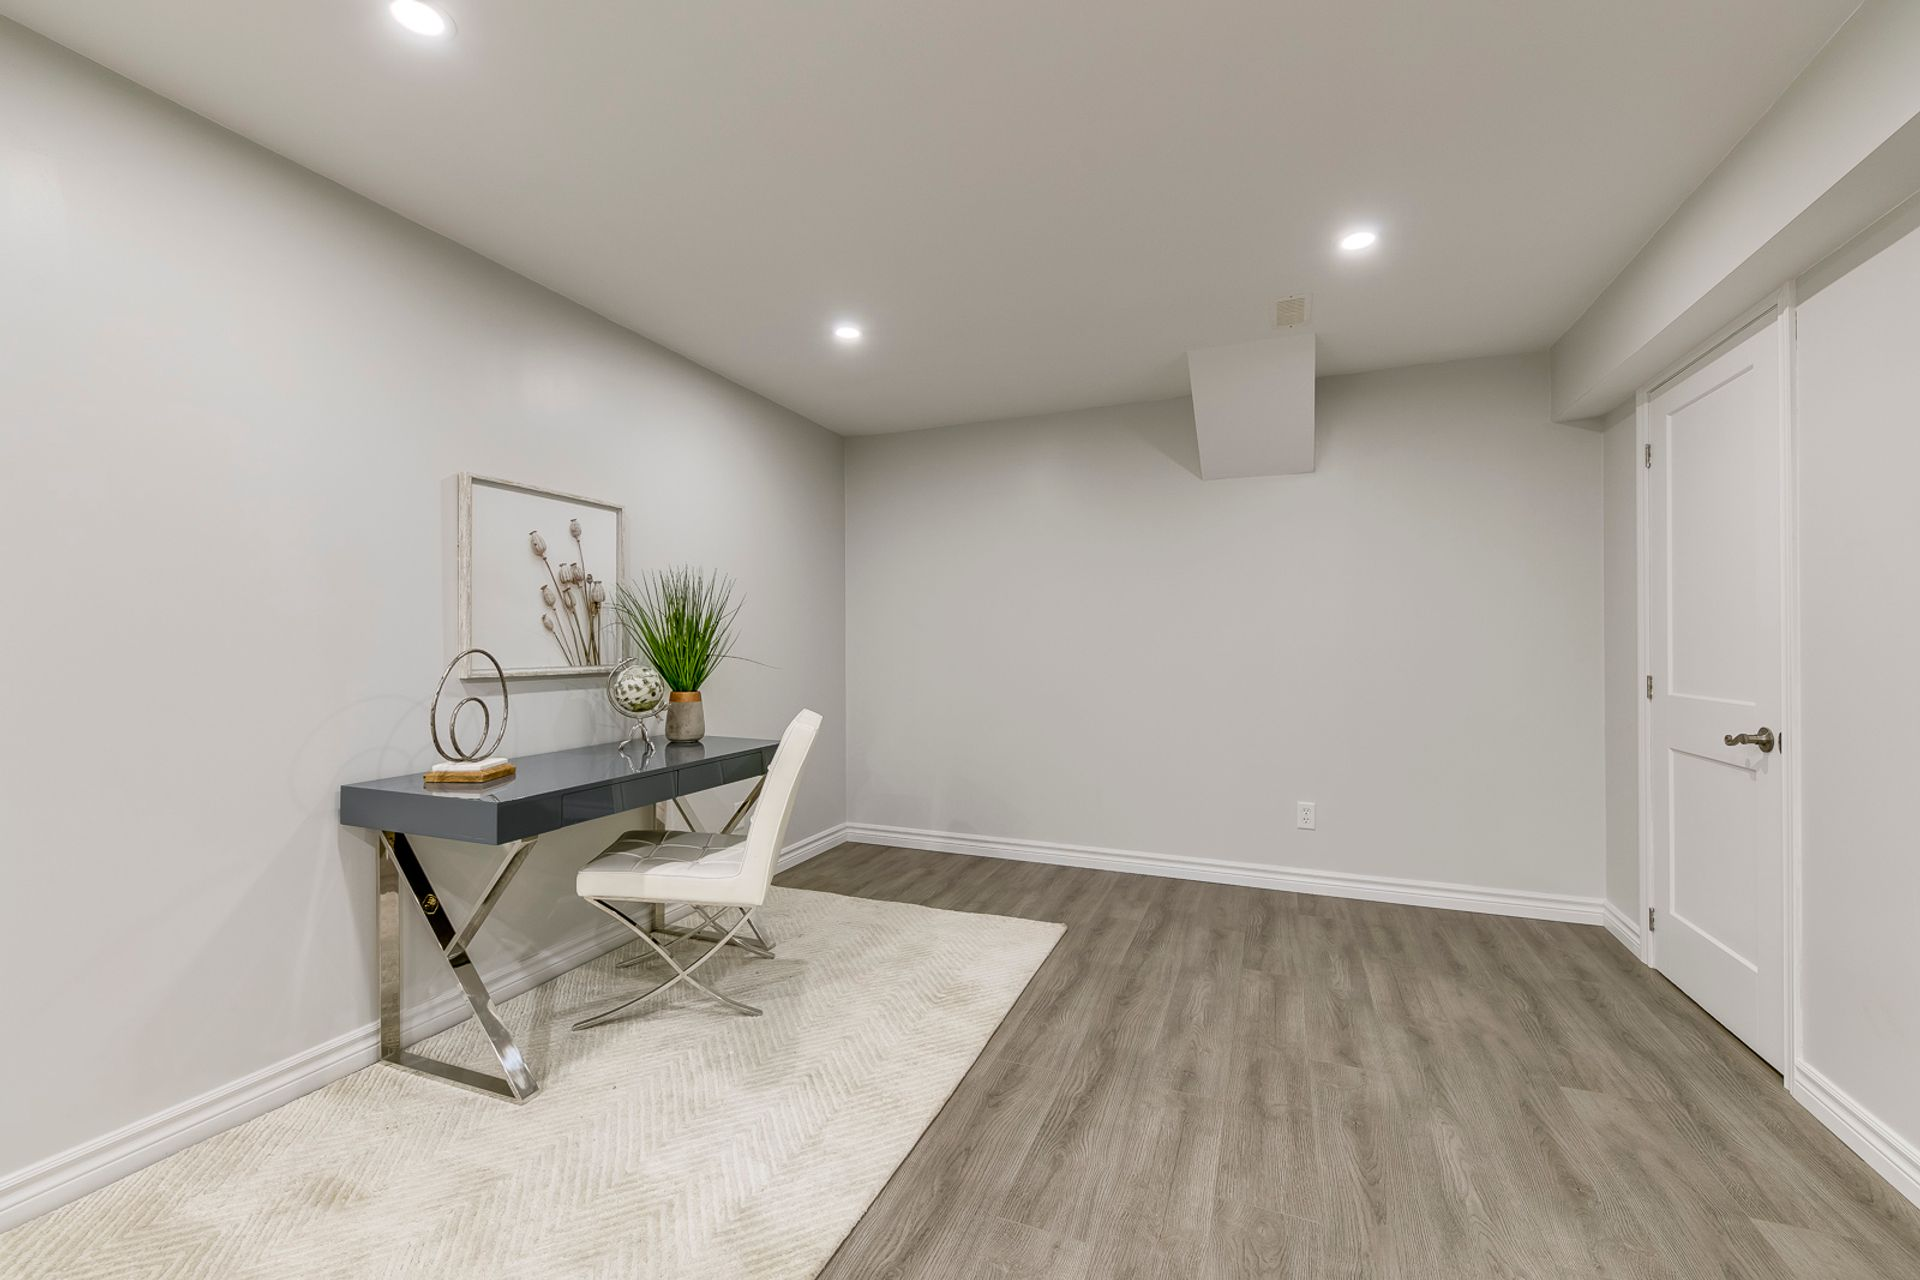 Basement - 6278 Lavery Crt, Mississauga - Elite3 & Team at 6278 Lavery Court, Meadowvale, Mississauga